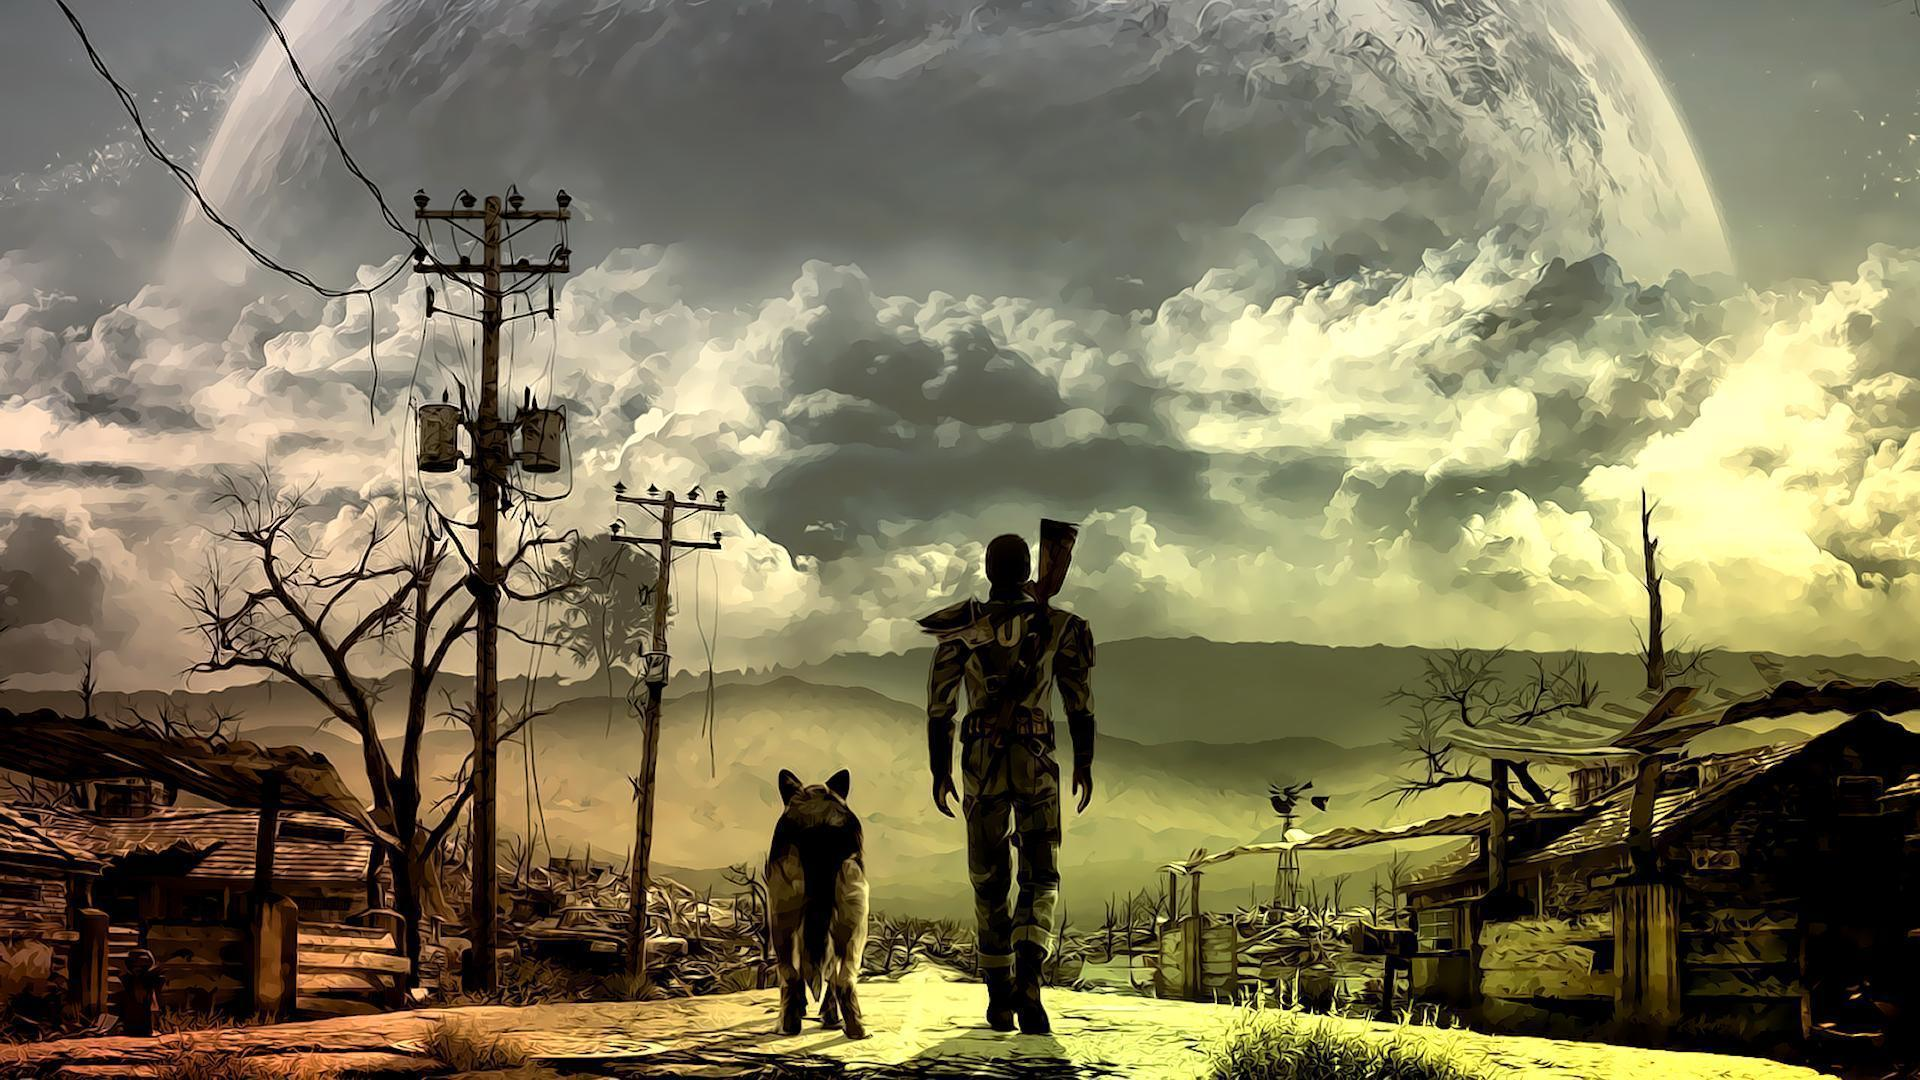 Fallout Wallpaper Collection - Album on Imgur